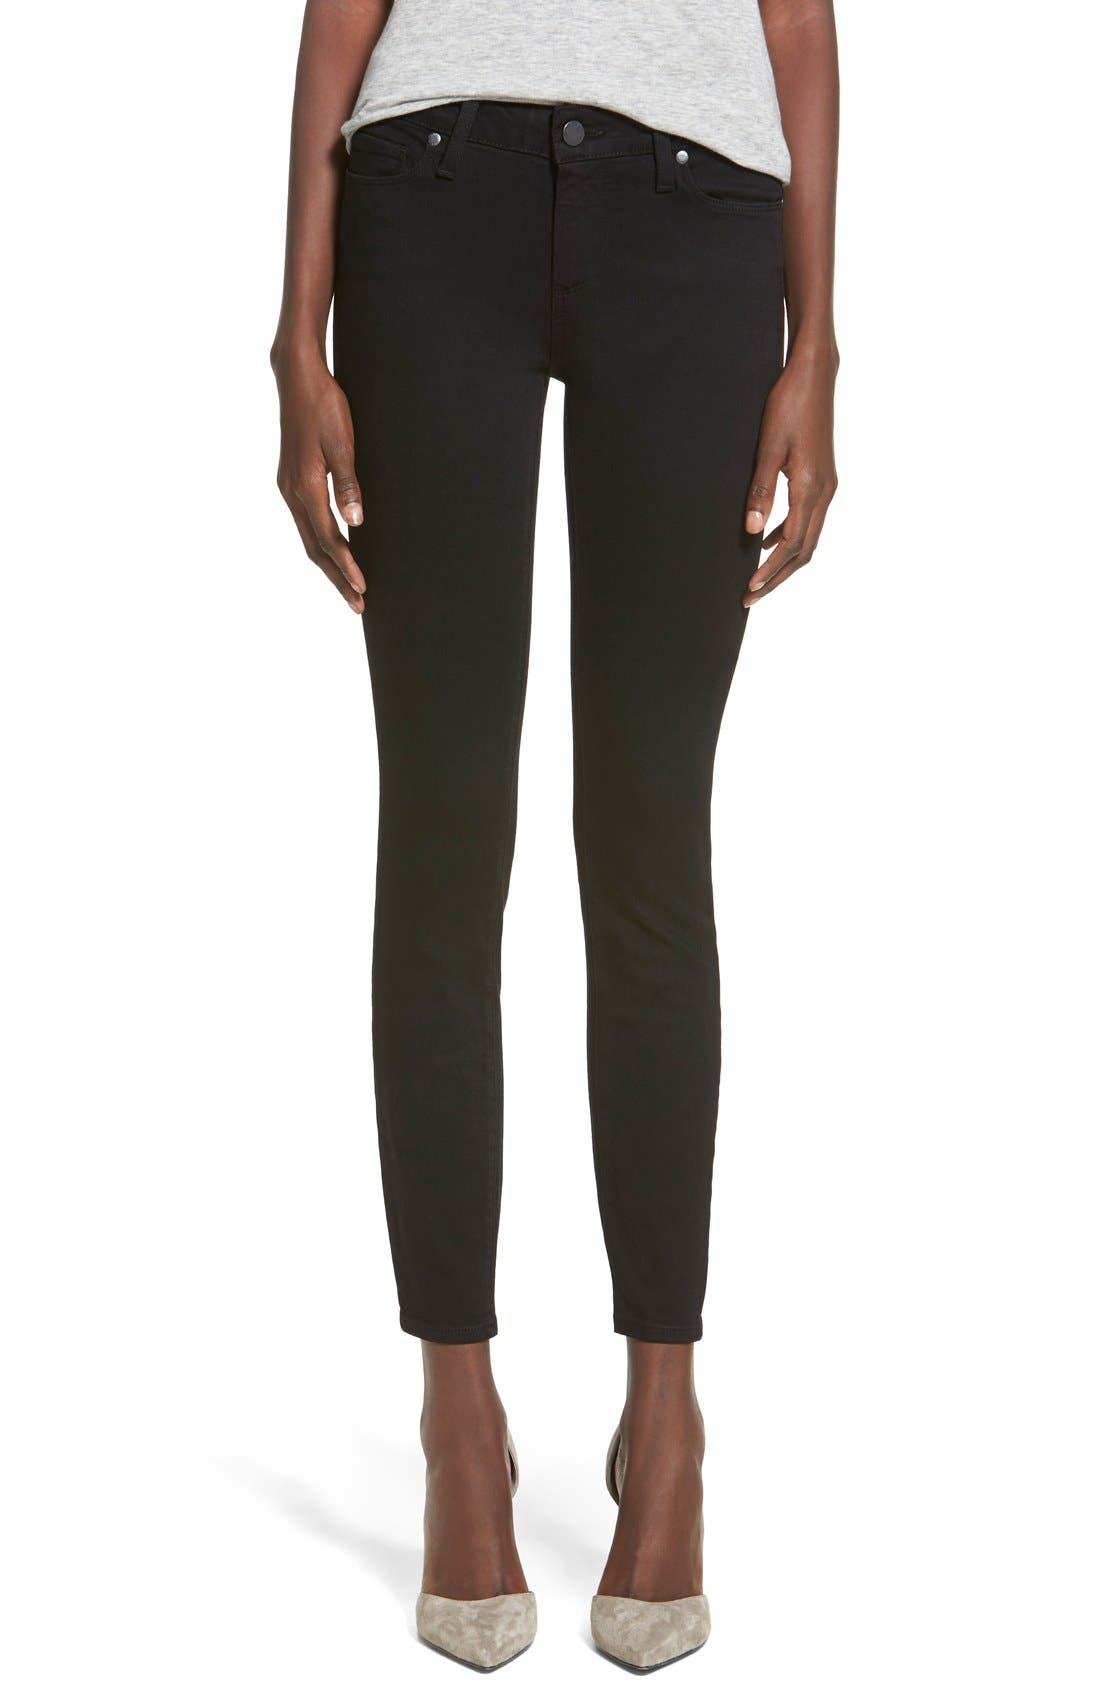 Transcend - Verdugo Ankle Ultra Skinny Jeans,                             Main thumbnail 1, color,                             Black Shadow